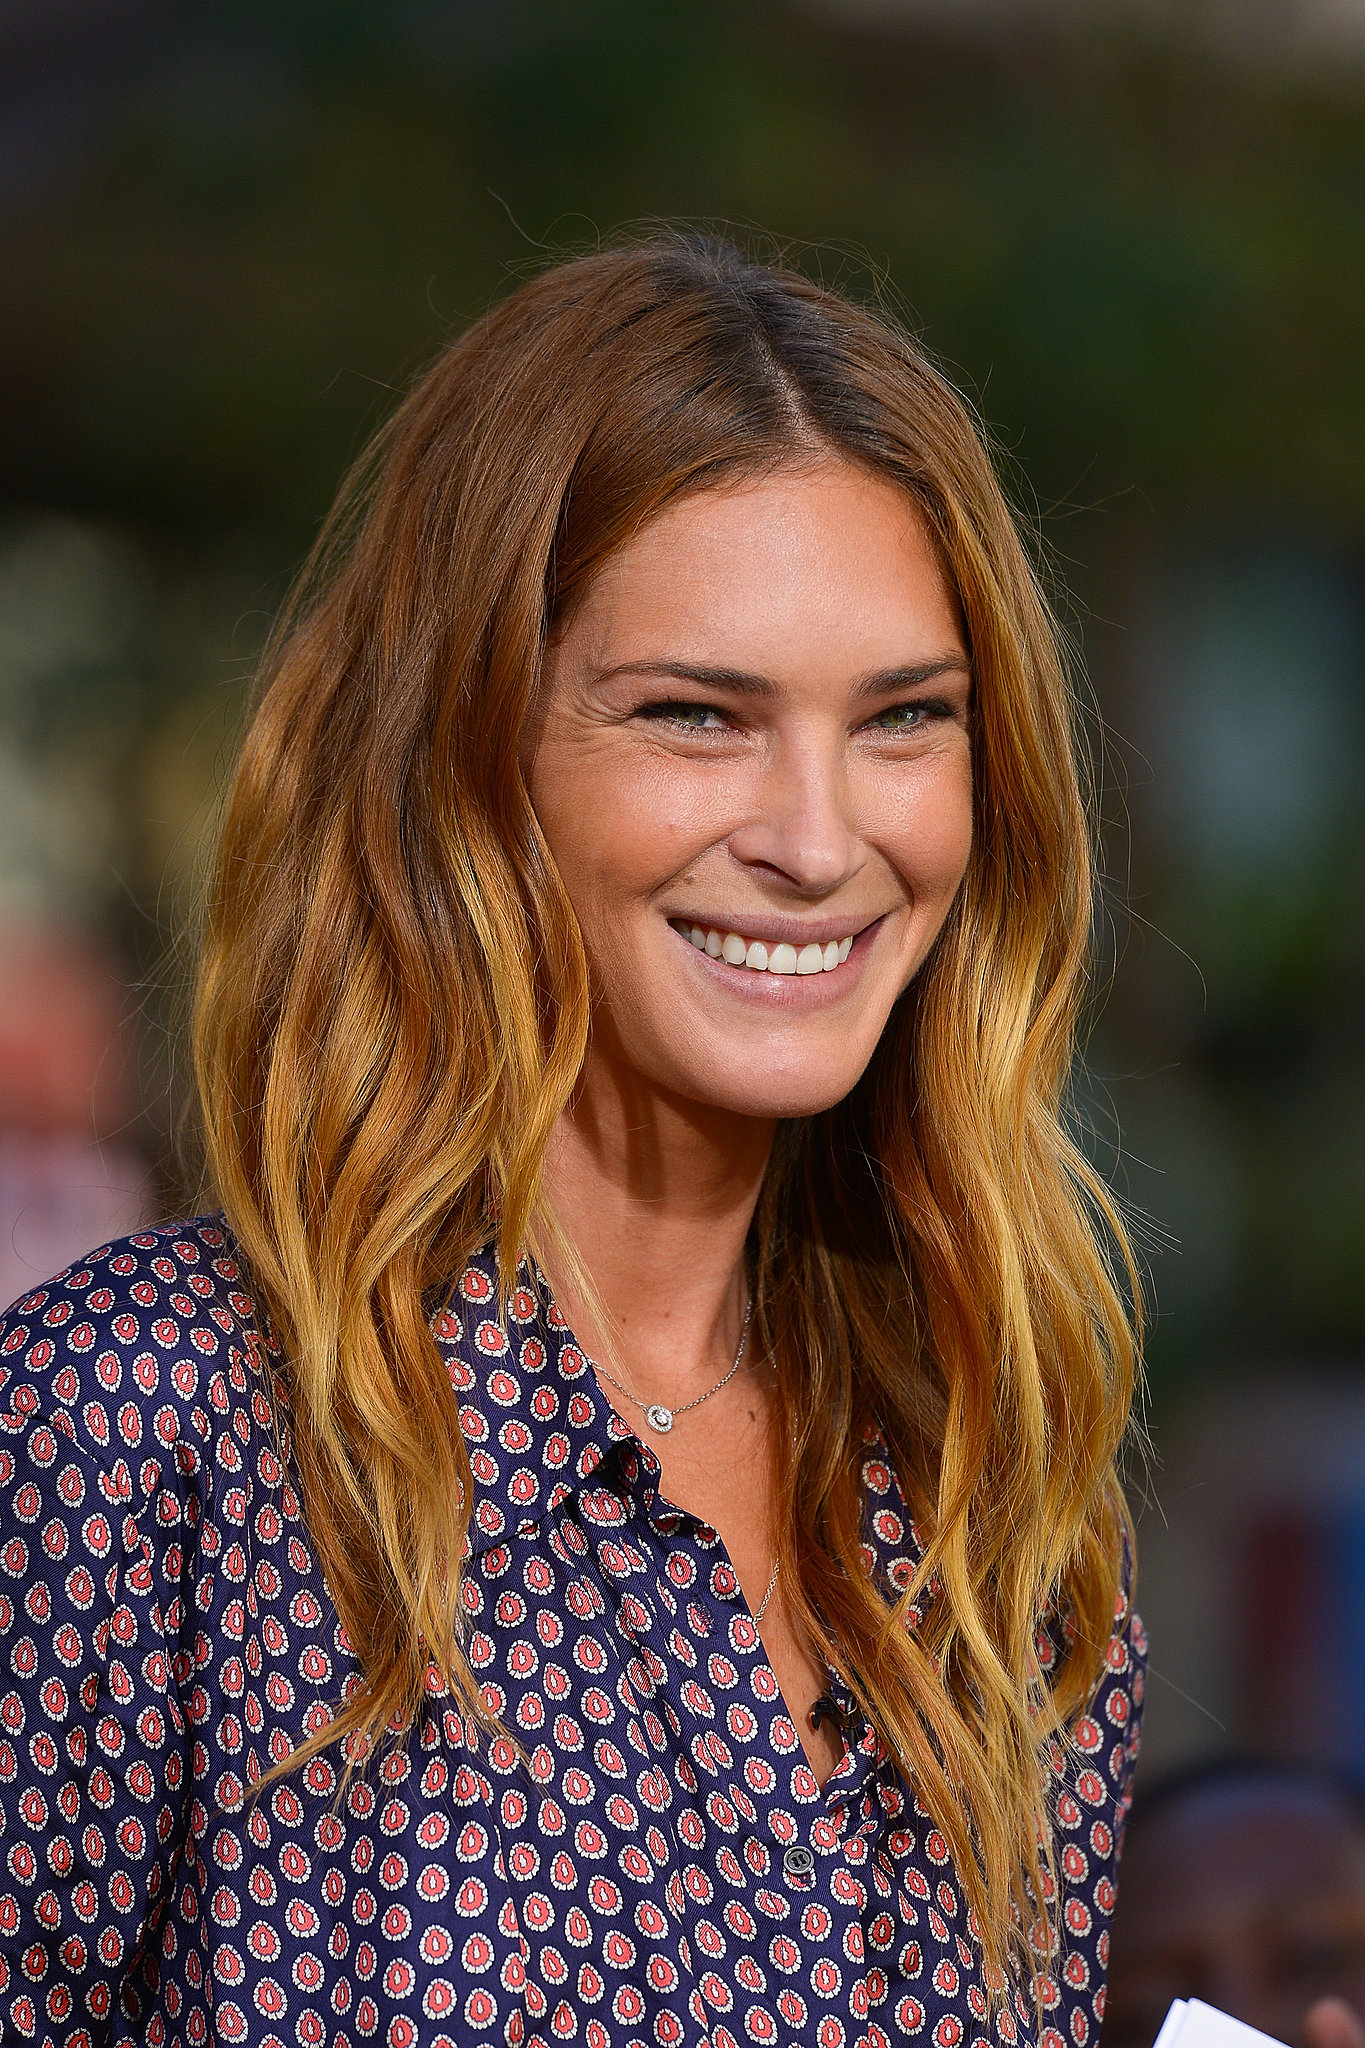 Model Erin Wasson is known for her bedhead hairstyles, and her beachy waves had the perfect balance of low-key and polished in LA recently.